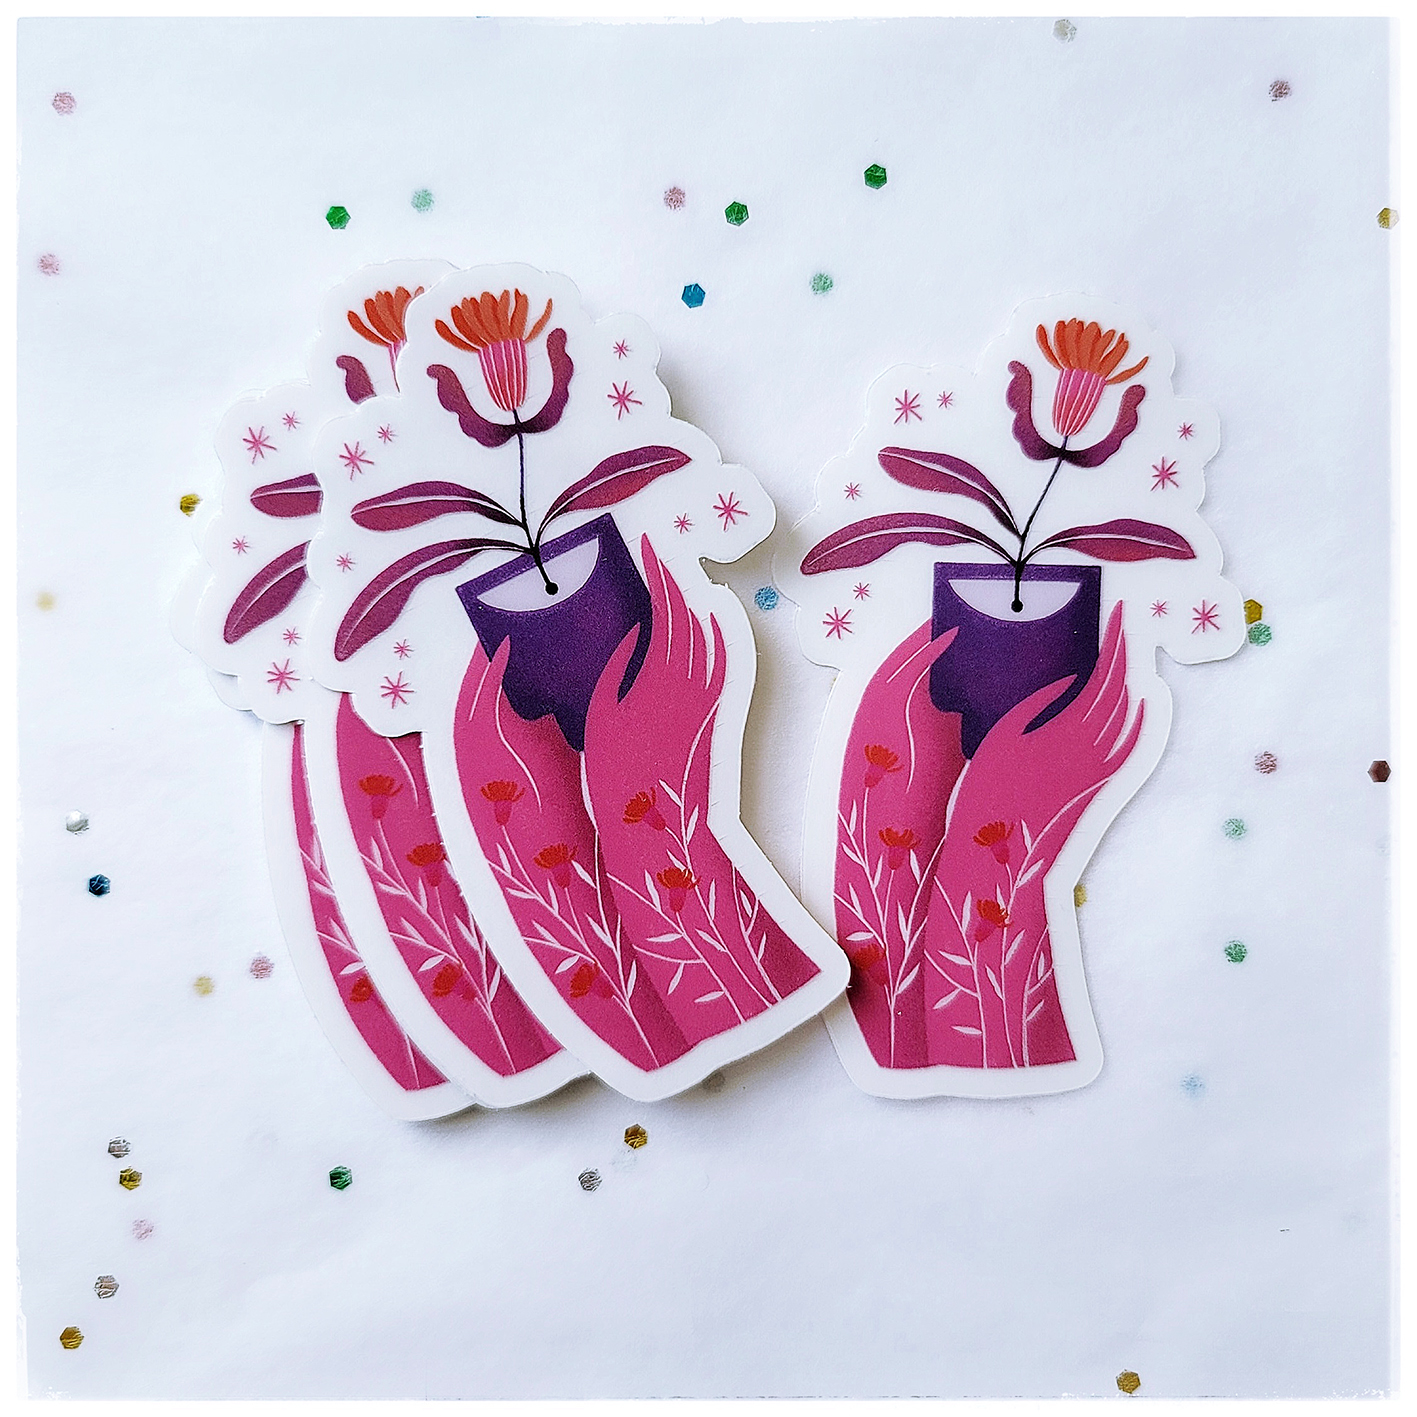 Clear vinyl sticker that showing two pink hands that are offering a red flower in a lovely manner. Both hands are covered with white and red tiny flowers. This sticker is water and weather proof.